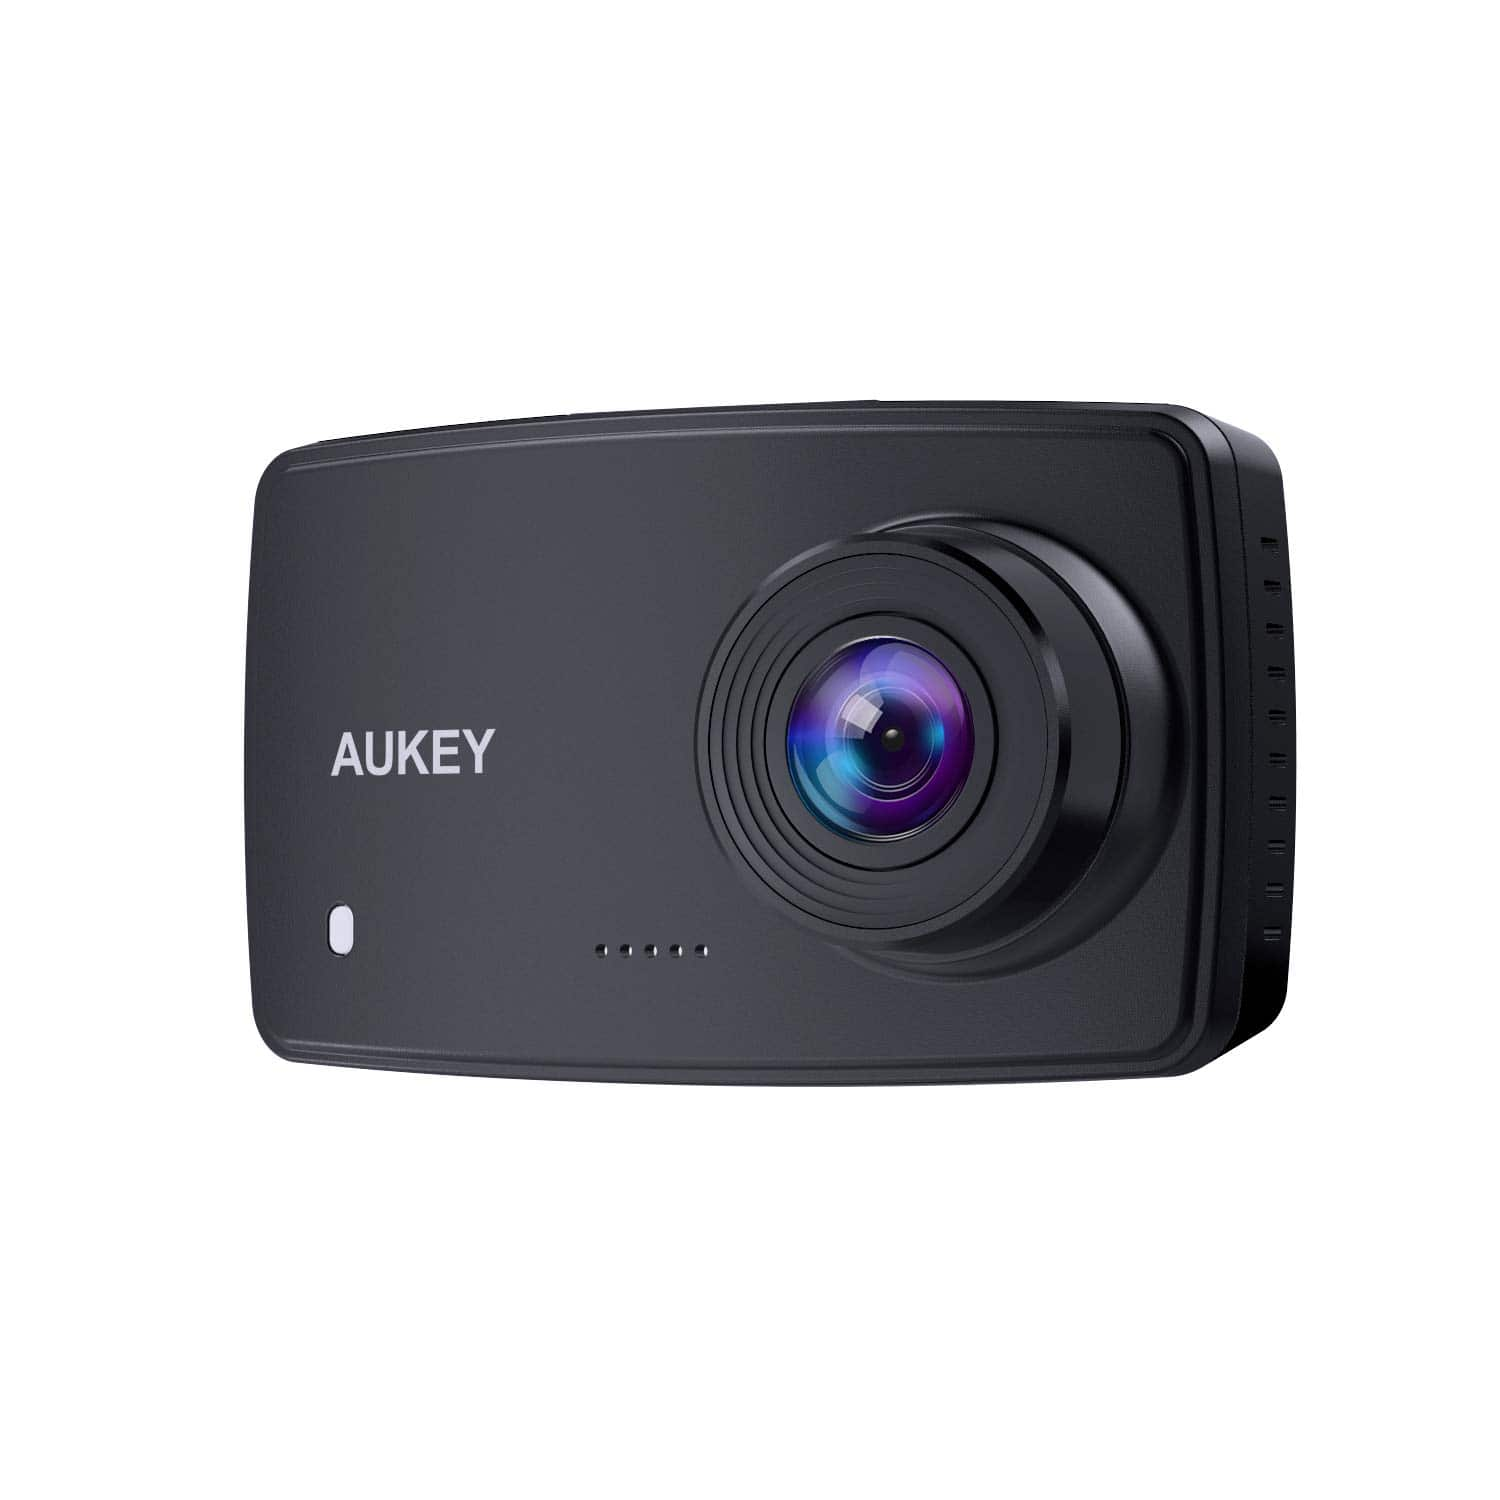 AUKEY Dash Cam, 1080p Dash Camera for Cars with 6-Lane Lens, 2.7 Inch LCD, Motion Sensor - $24 - Amazon FS